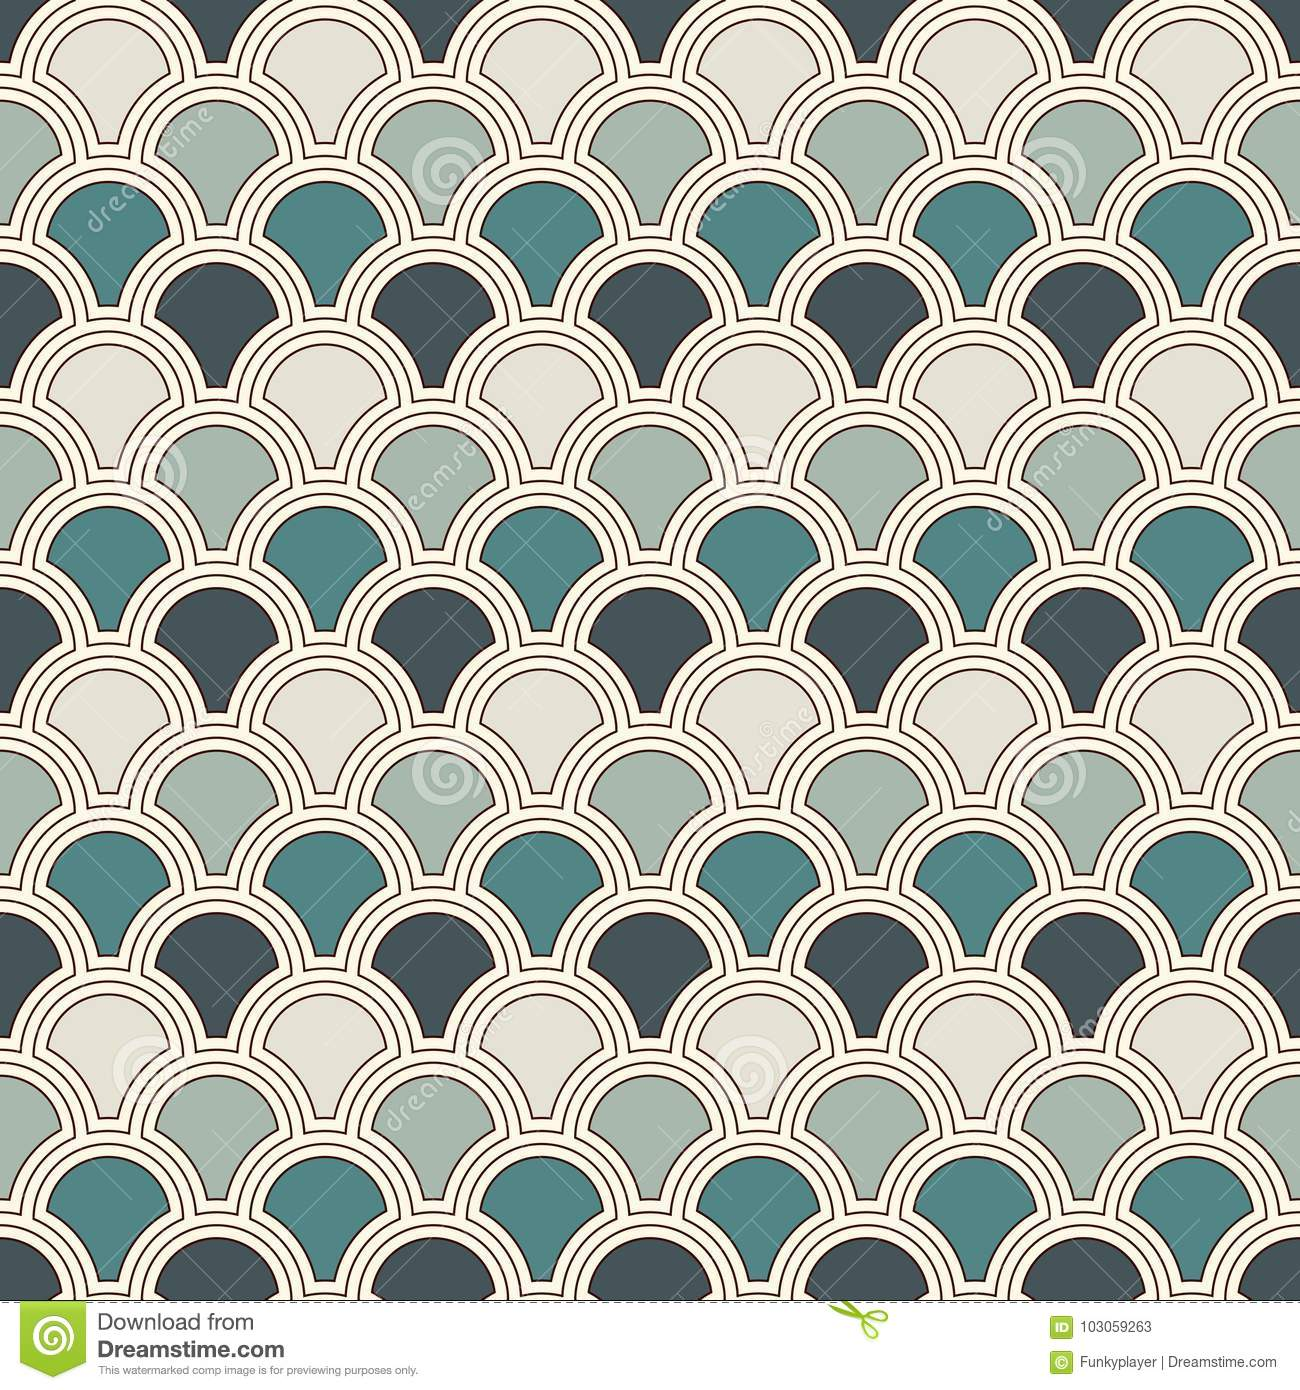 Blue color fish scale wallpaper. Asian traditional ornament with repeated  scallops. Seamless pattern with semicircles.